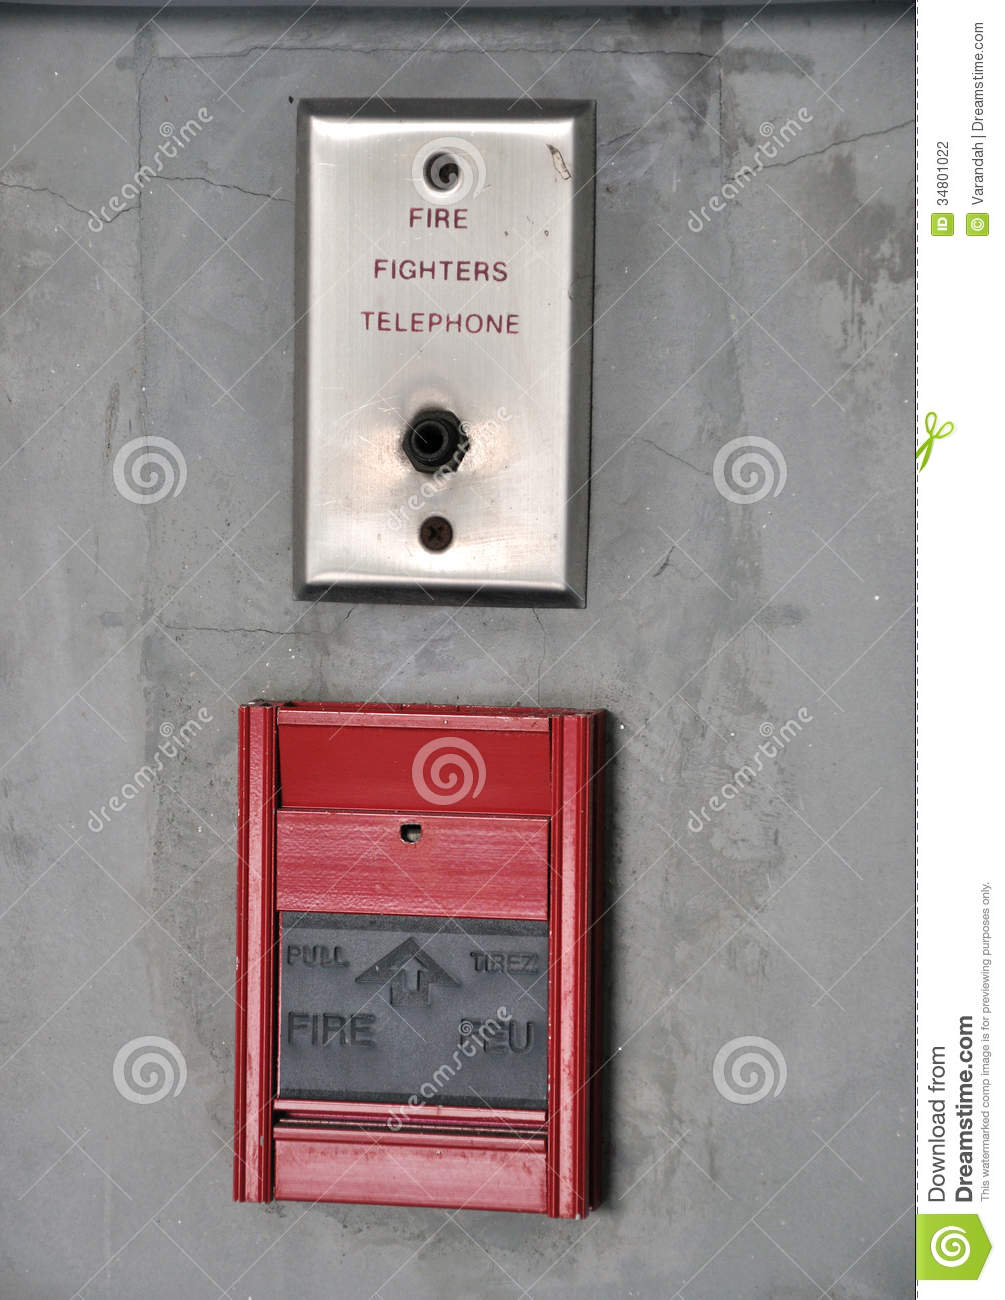 Fire Alarm And Fire Fighter Telephone On The Wall Stock